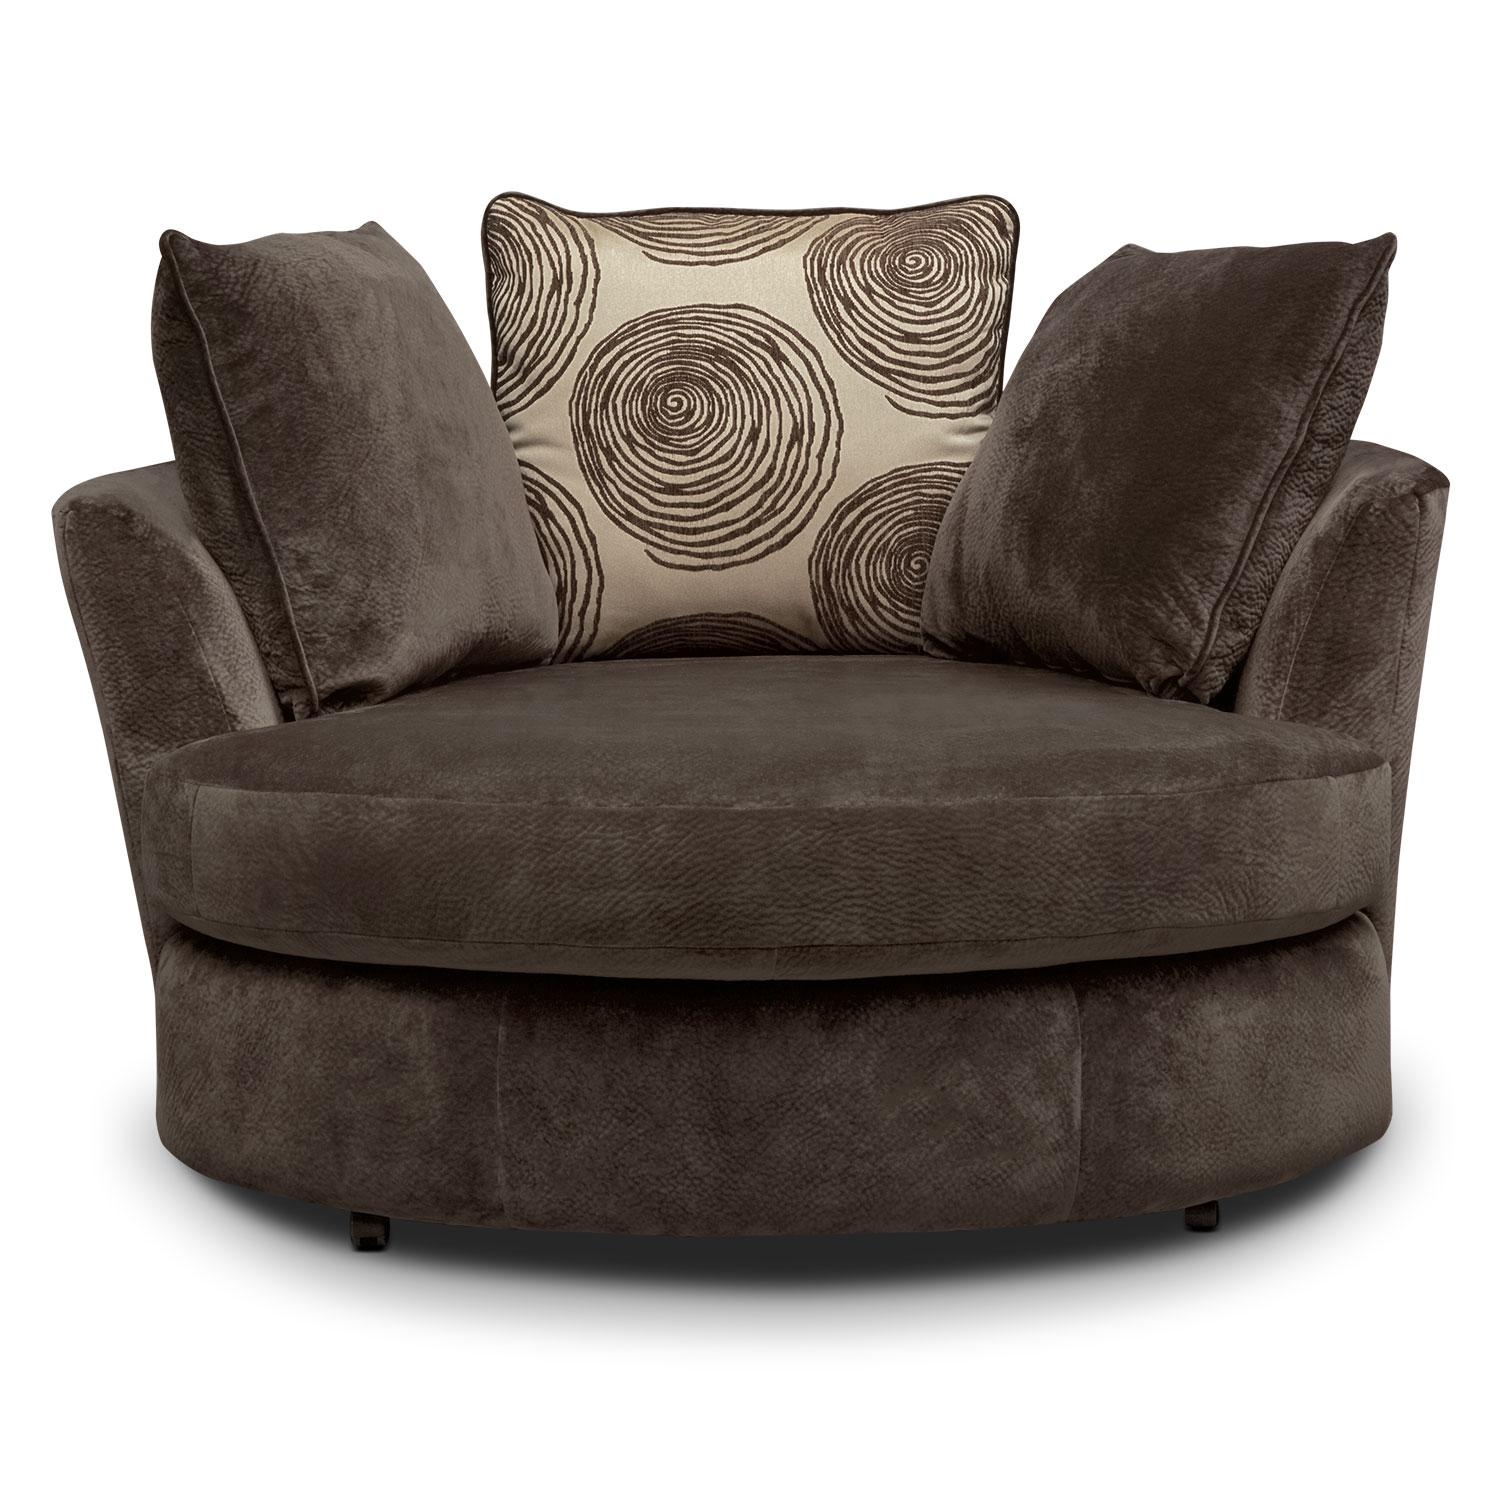 Spinning Chair 20 Best Spinning Sofa Chairs Sofa Ideas